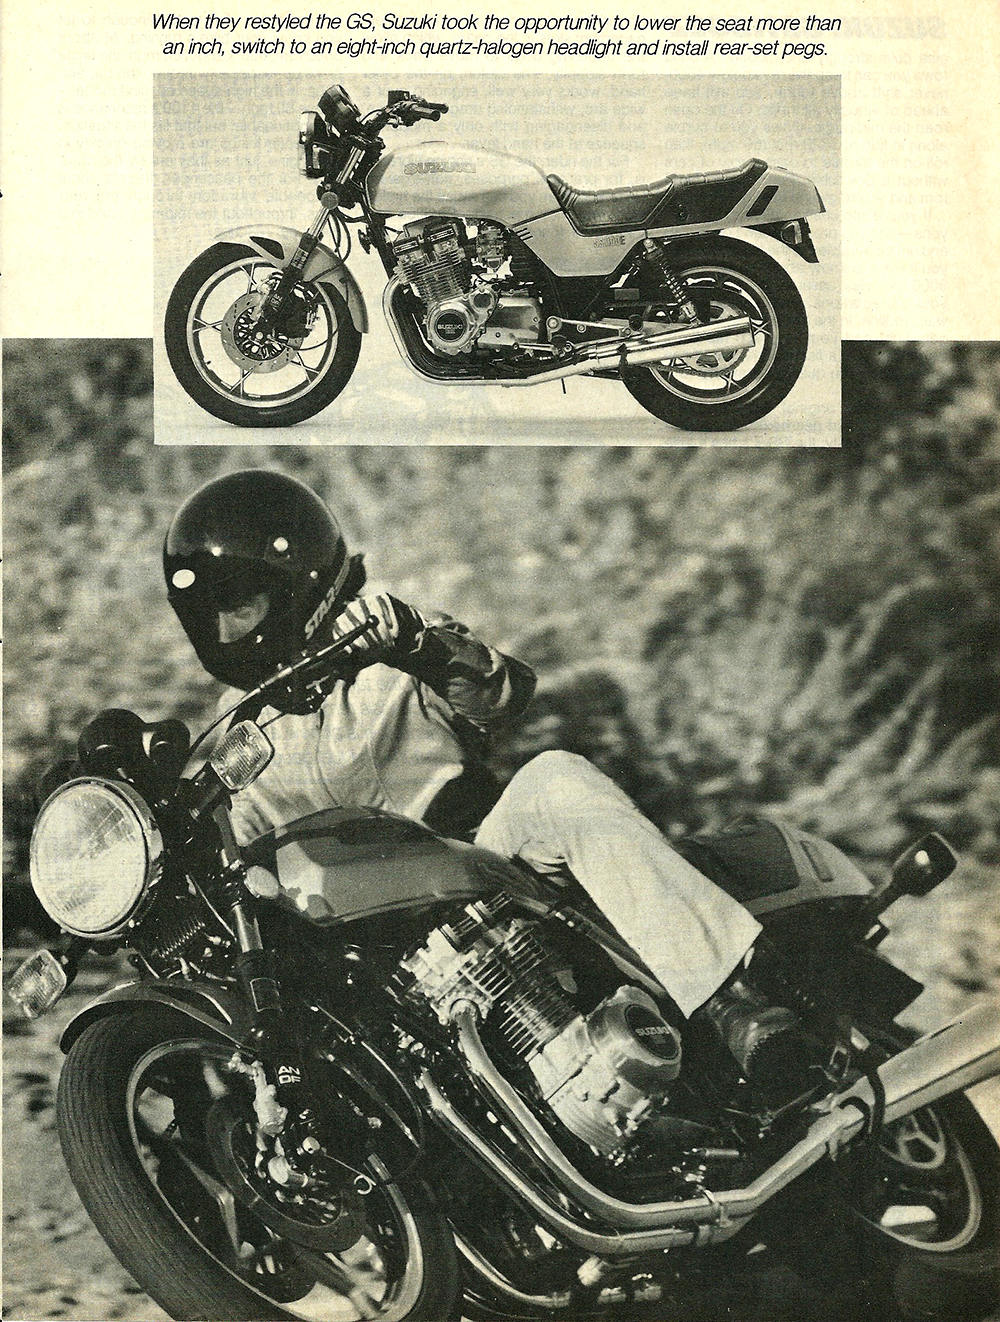 1982 Suzuki GS1100EZ road test 04.jpg